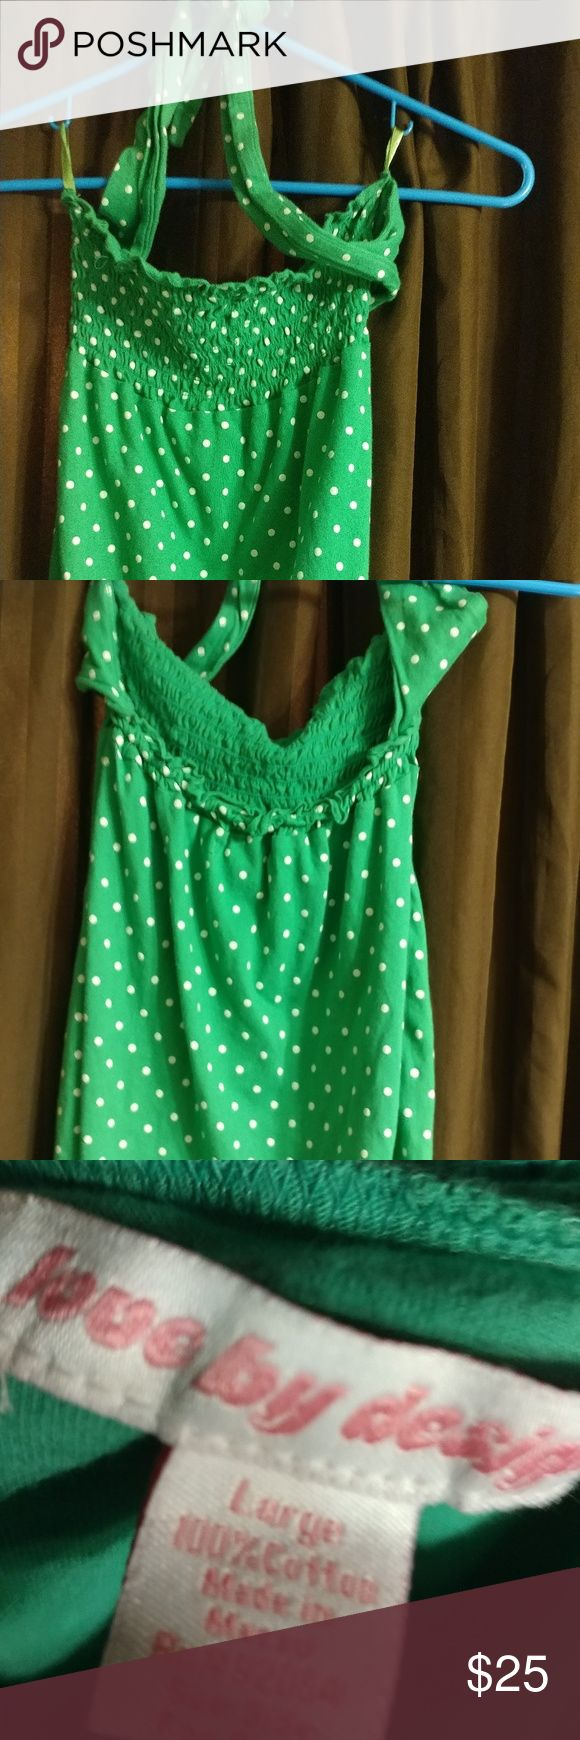 Green and white polka-dot top Really cute green and white polka dot top crop top tie around neck size large love by design Tops Crop Tops